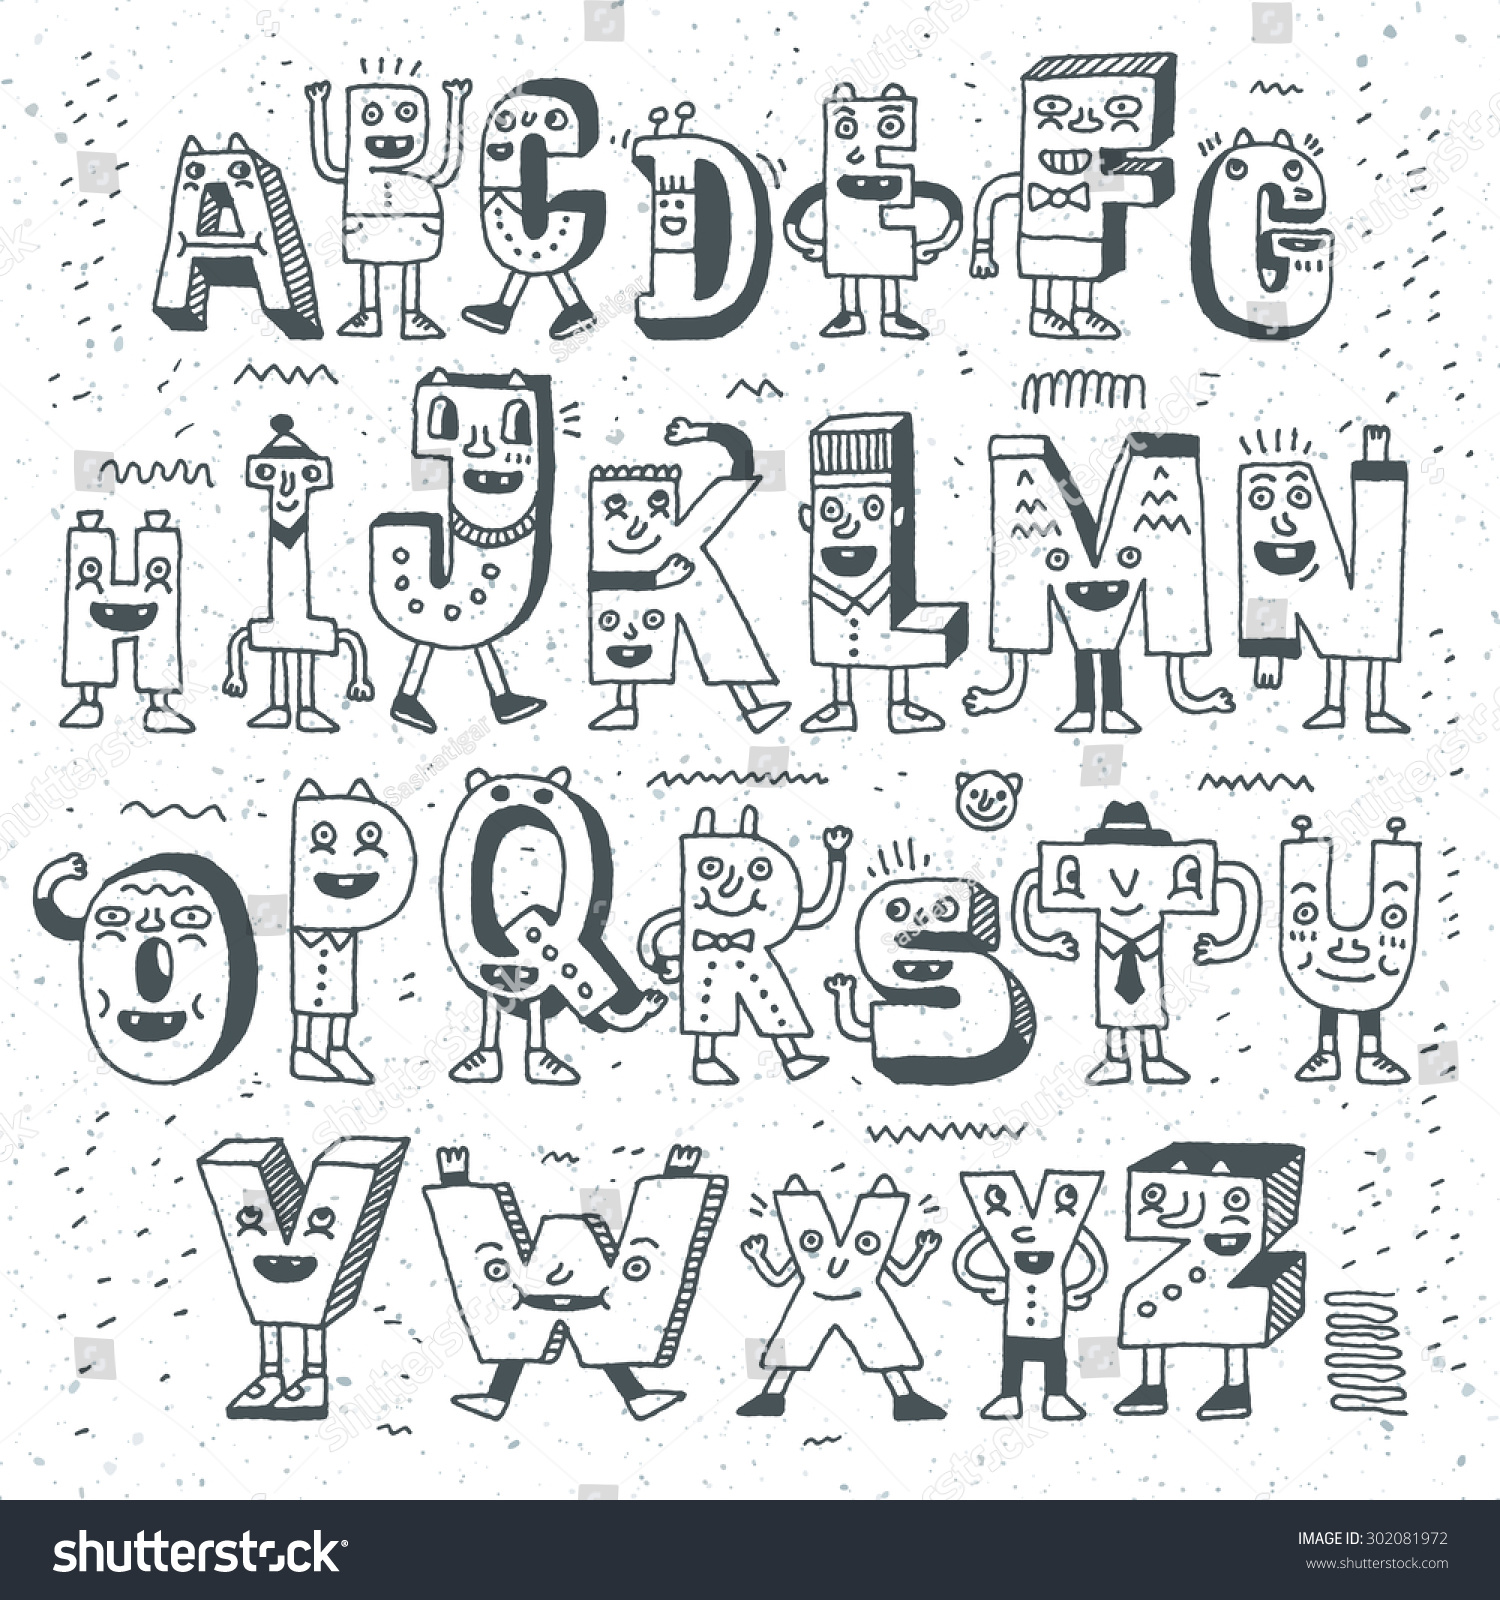 designs for letters